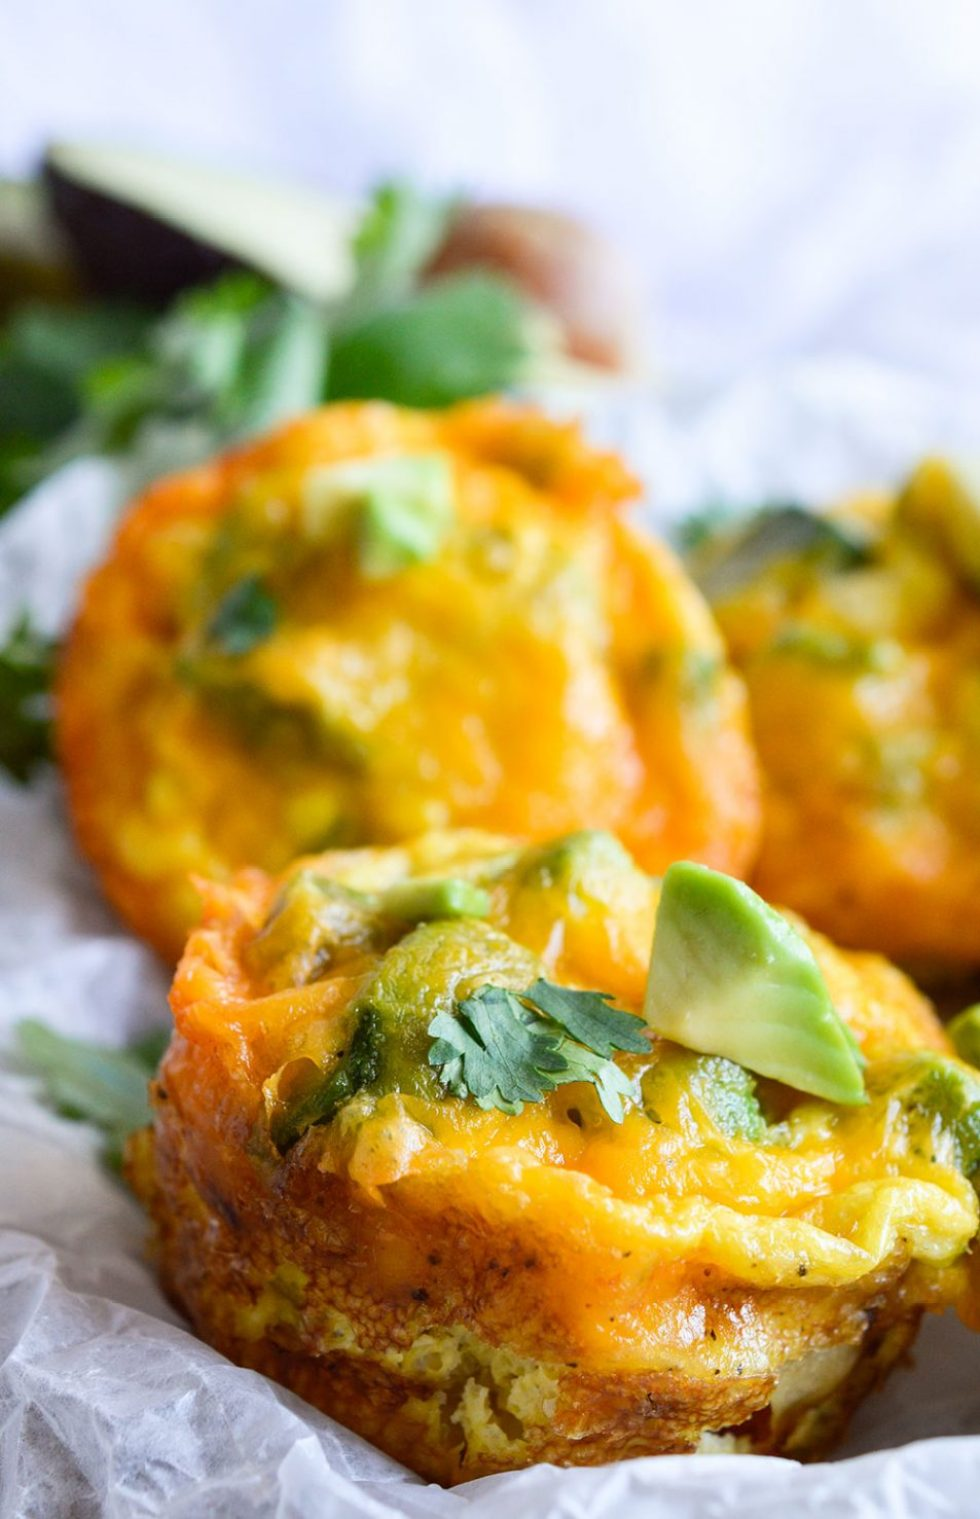 These Cheesy Avocado Egg Muffins are great for feeding a hungry breakfast or brunch crowd! All your favorite breakfast ingredients in one bite sized vegetarian egg muffin.